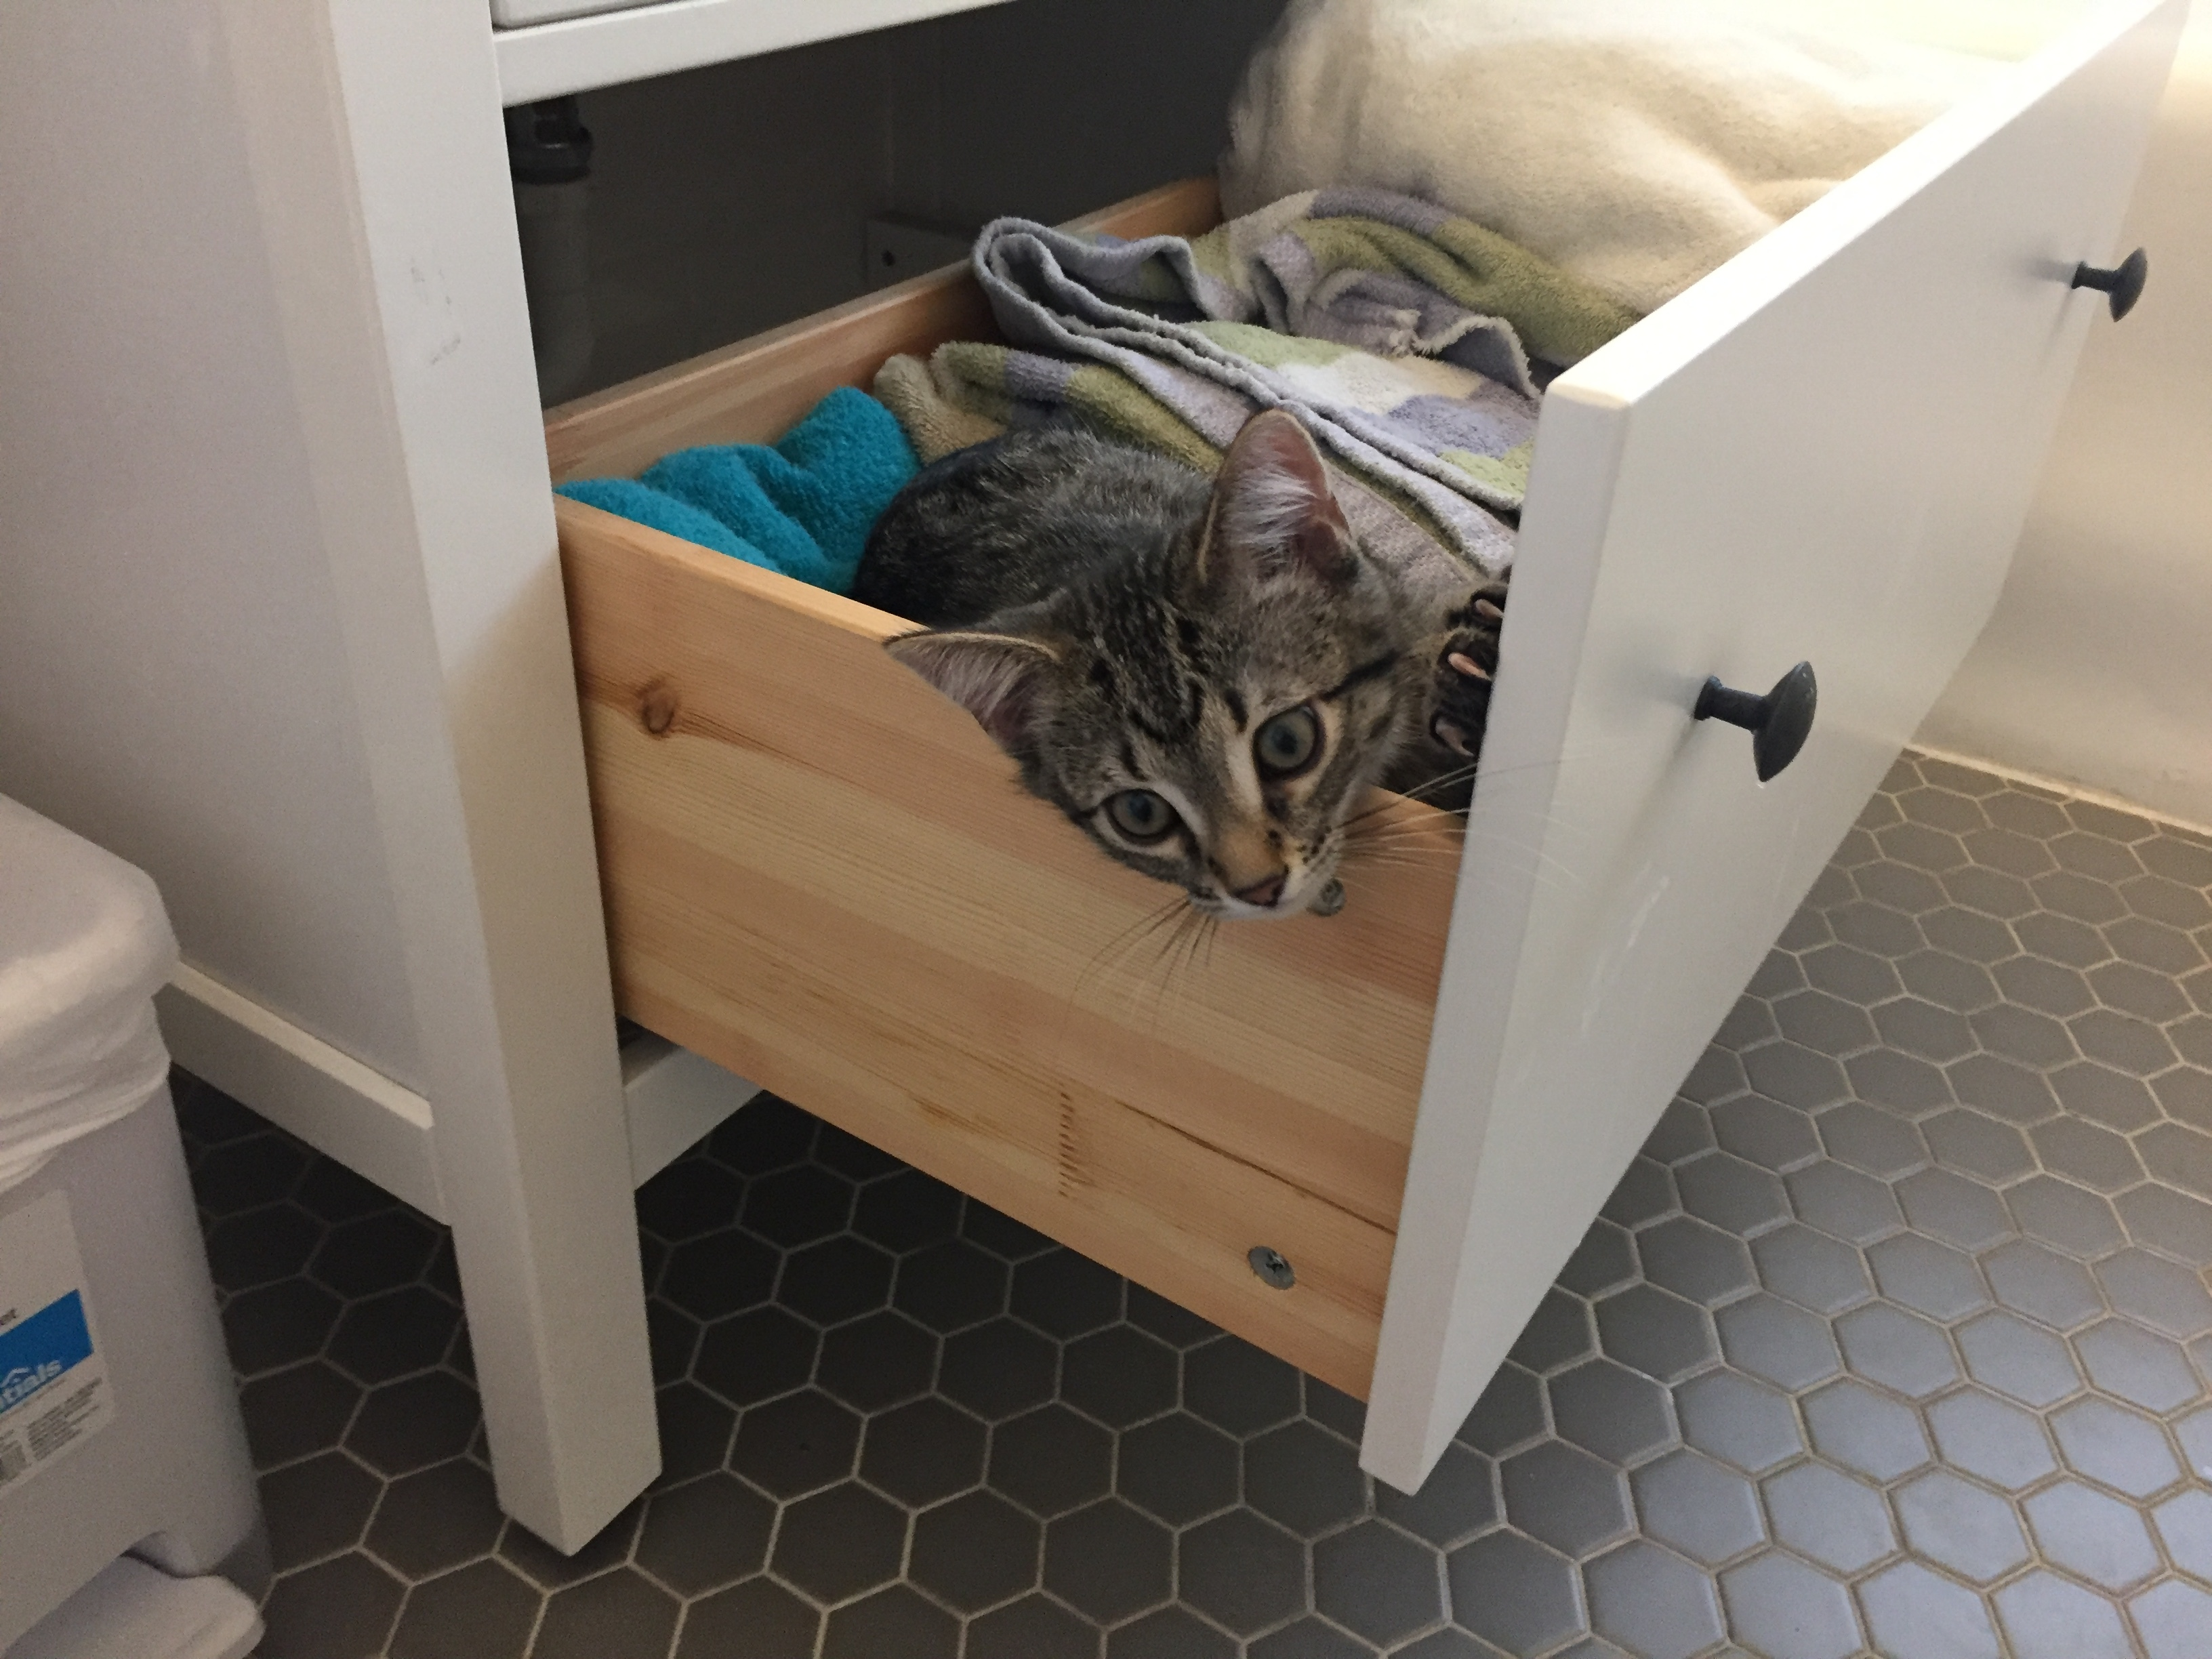 Shadow the cat, the newest edition to the Esposito family, takes refuge in a drawer full of bath towels.